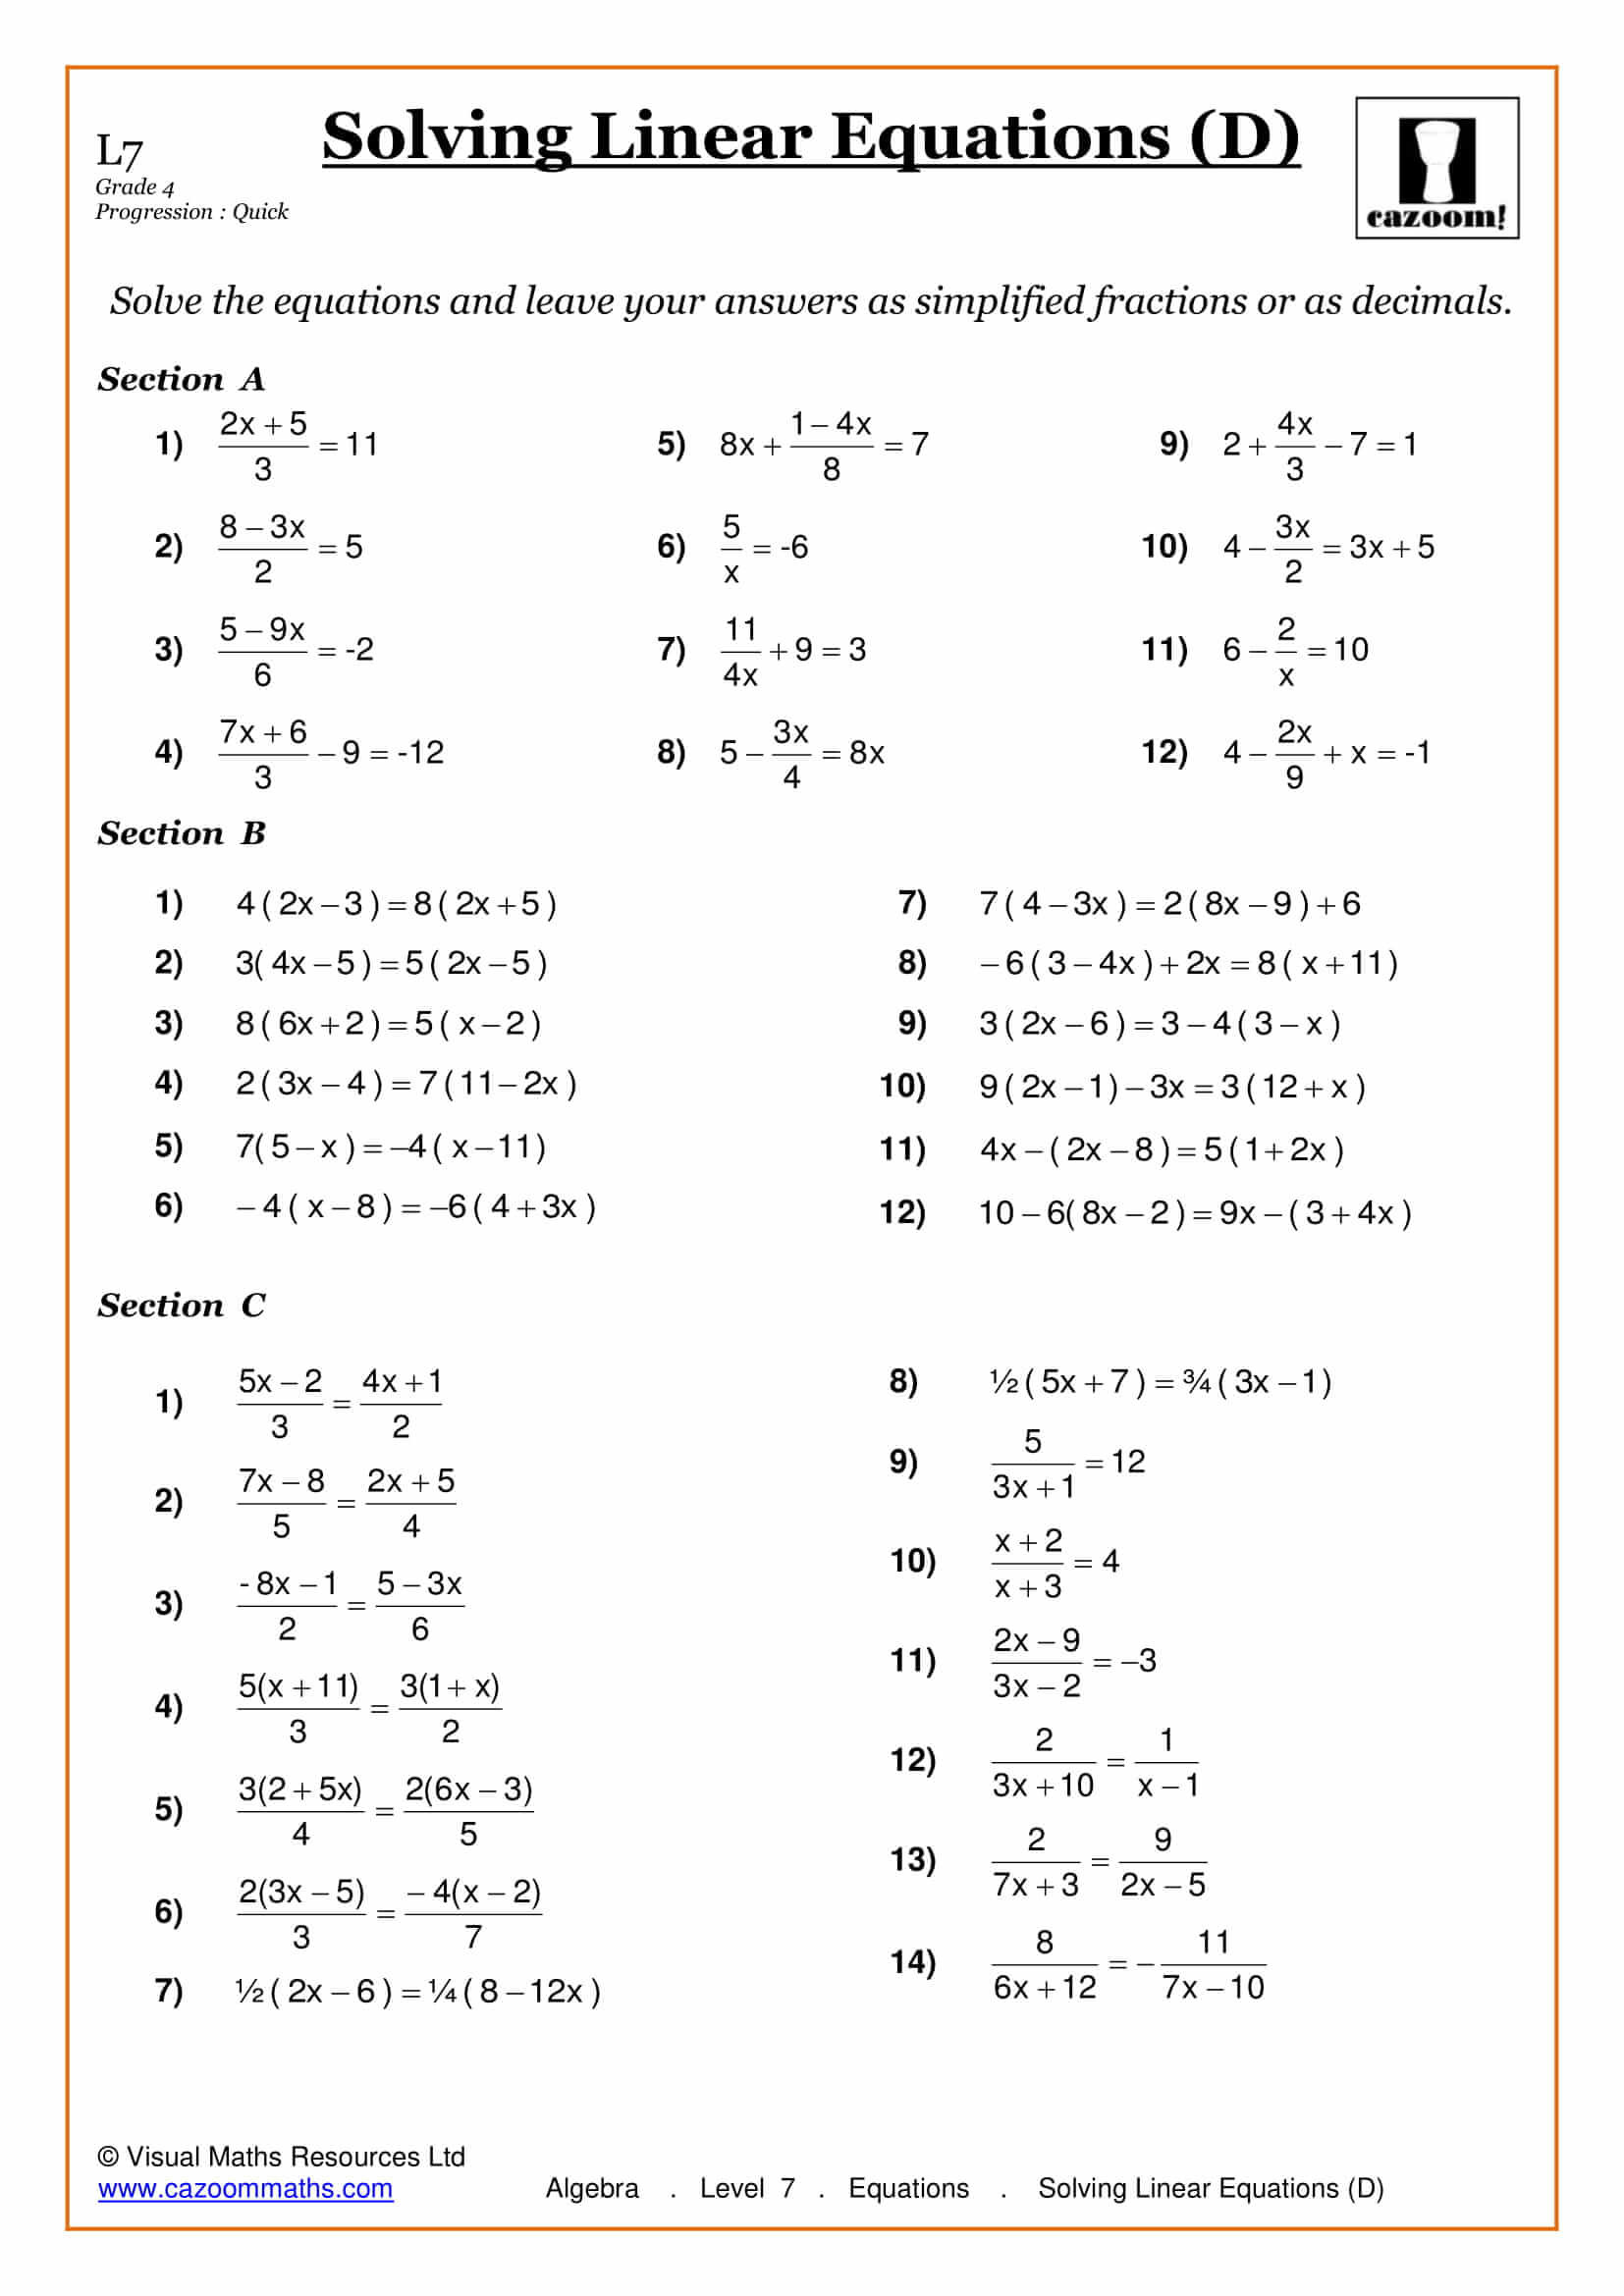 Saxon Math 2 Worksheets Pdf Maths Worksheets Ks3 Ks4 Printable Pdf Math Go Linear